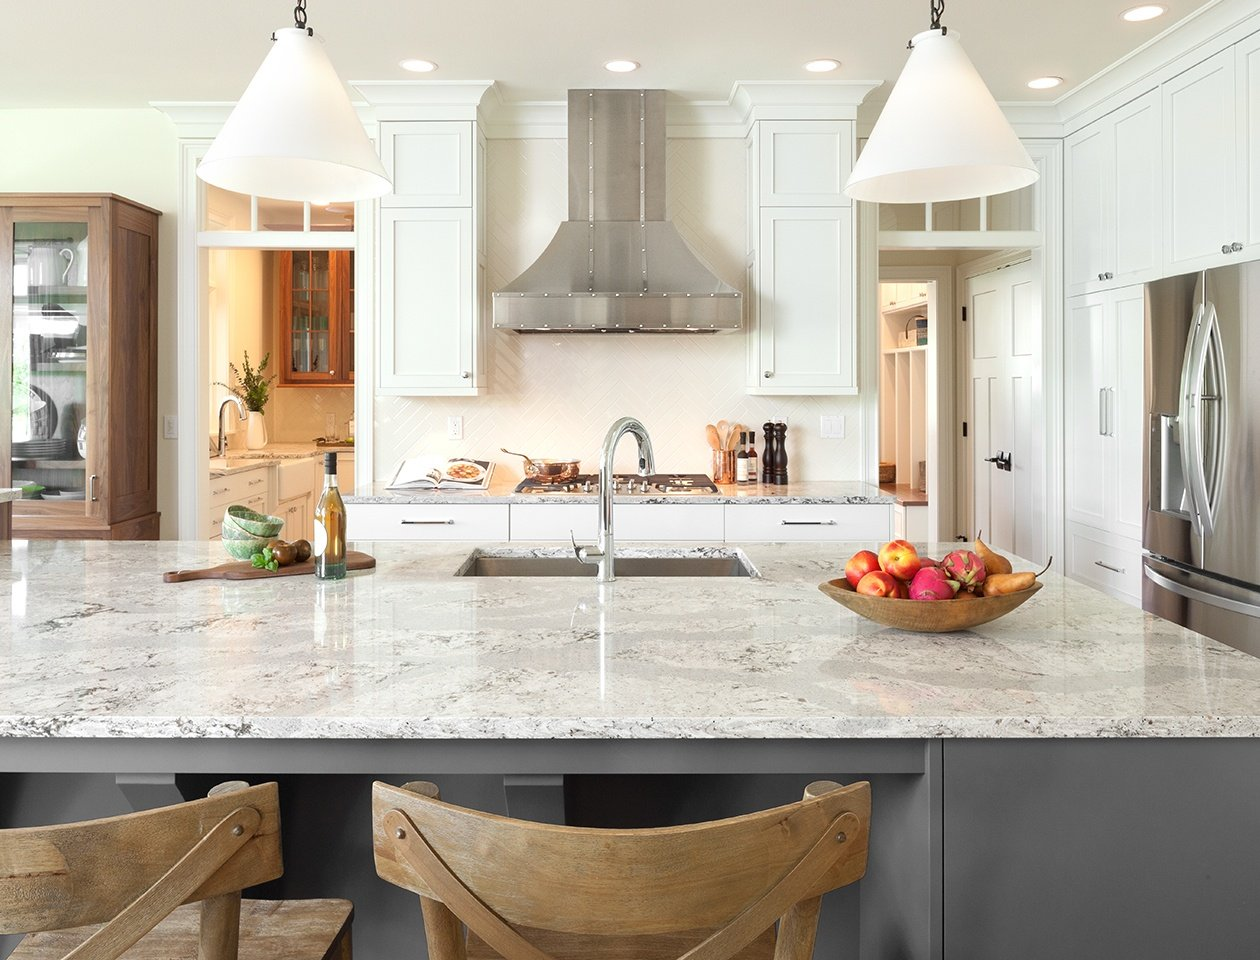 The Different Types Of Quartz Countertops1.jpg